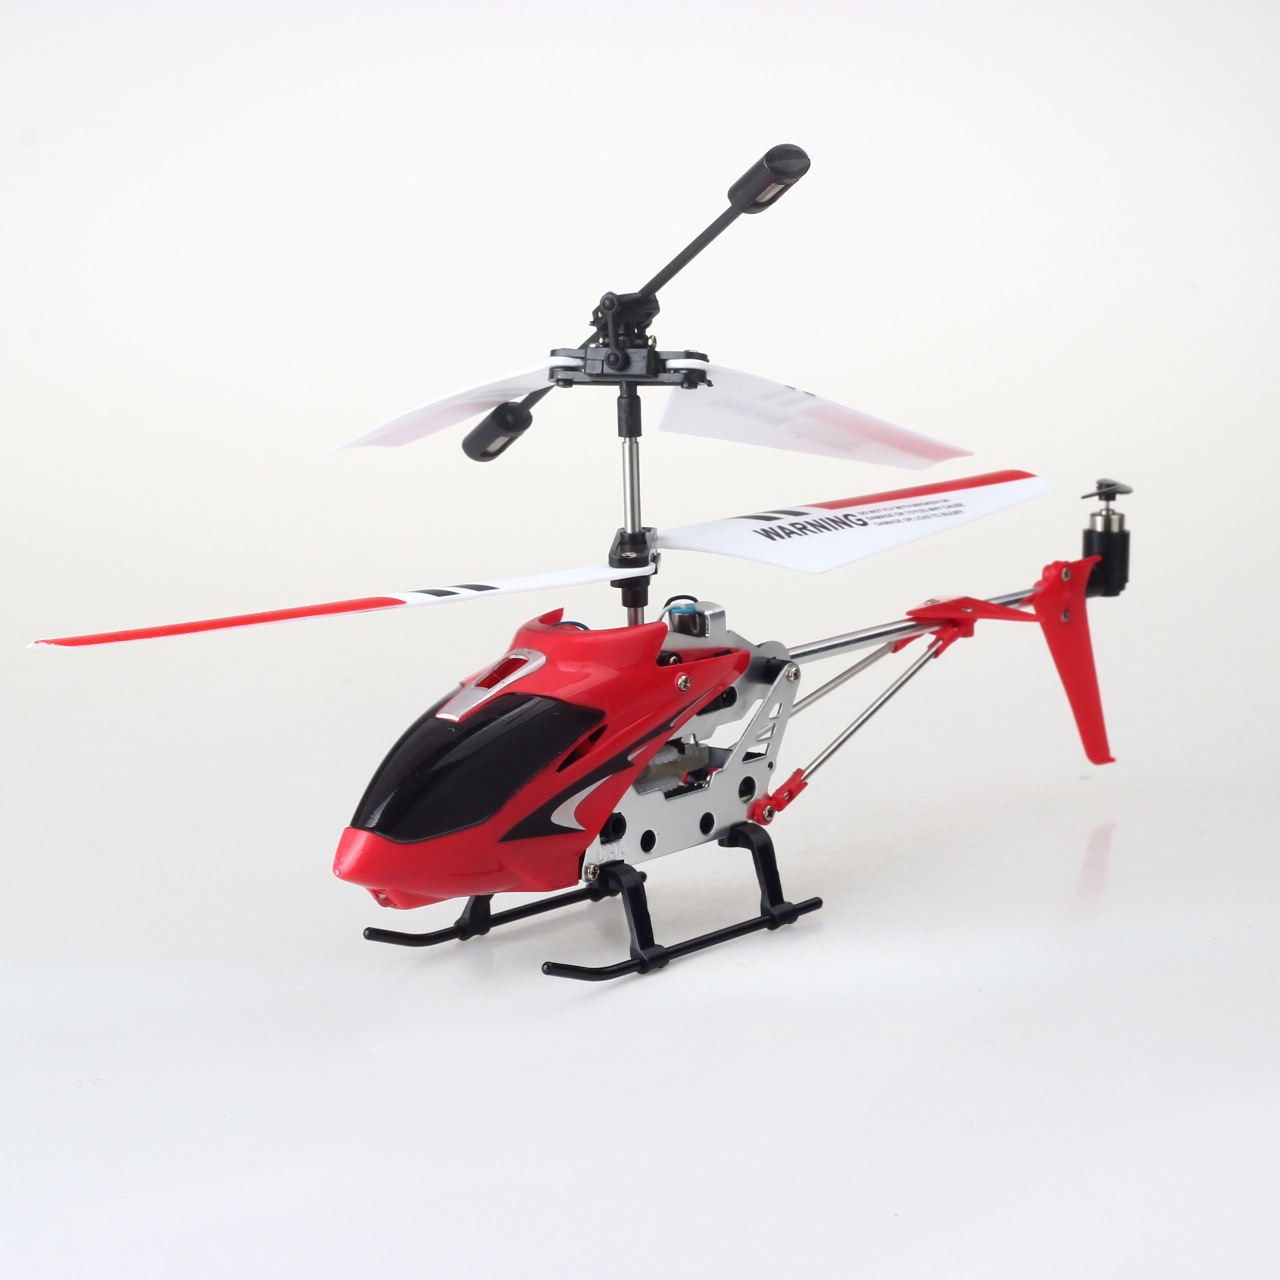 Aerial Photography 3.5 Channel Mode CHILDREN'S Toy Light Gyroscope S107 Remote Control Aircraft 807